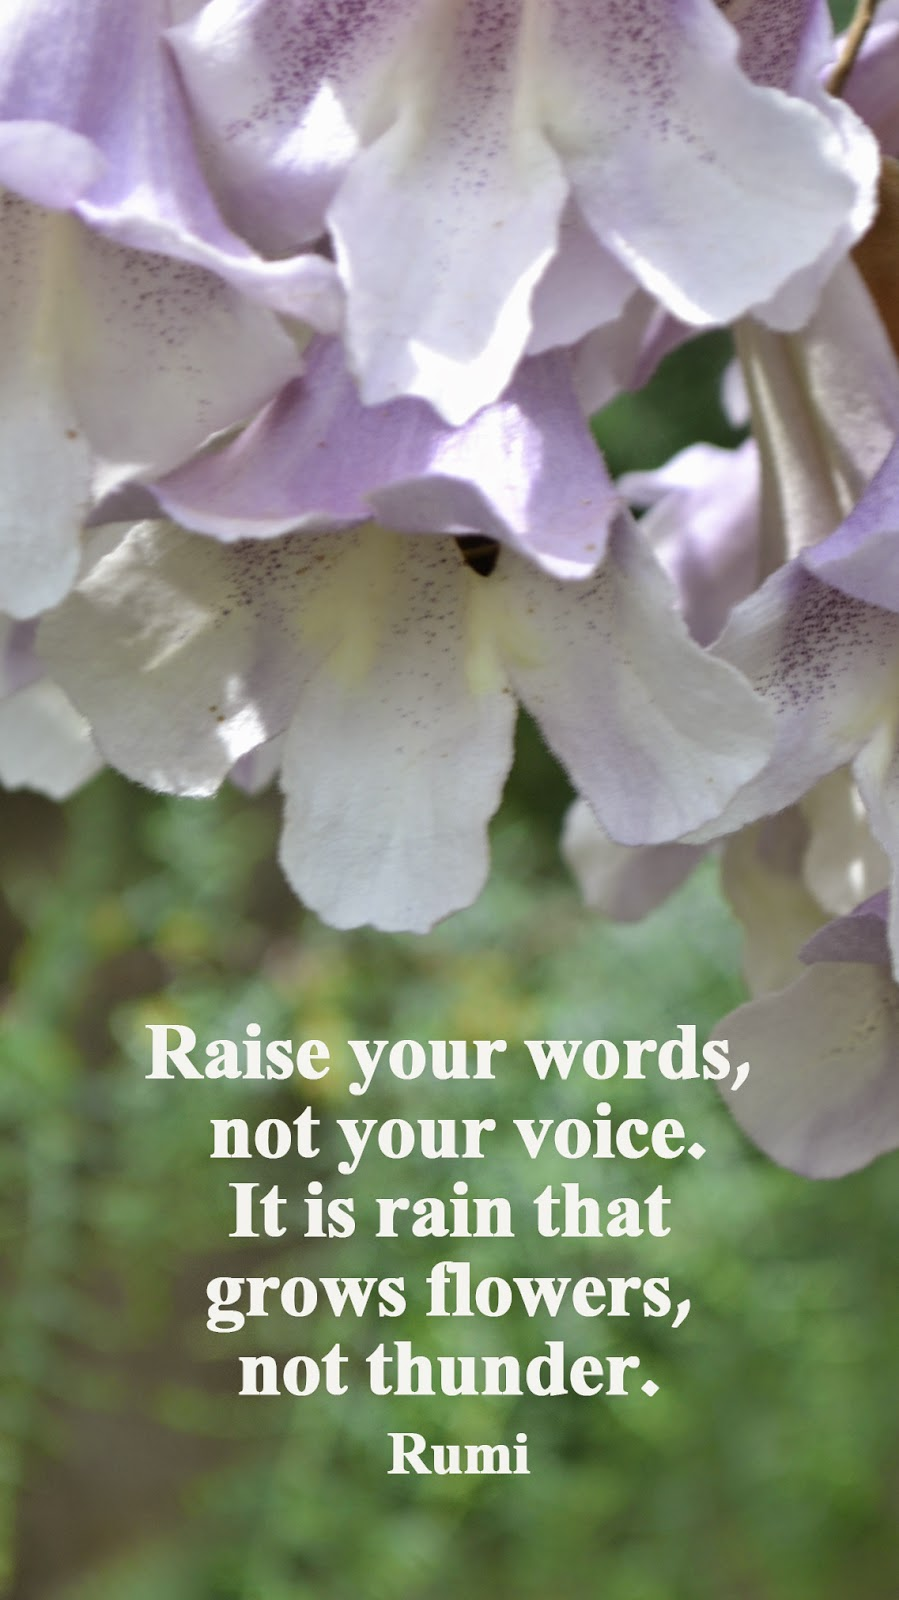 ... it's rain that grows flowers, not thunder - shewandersshefinds.com